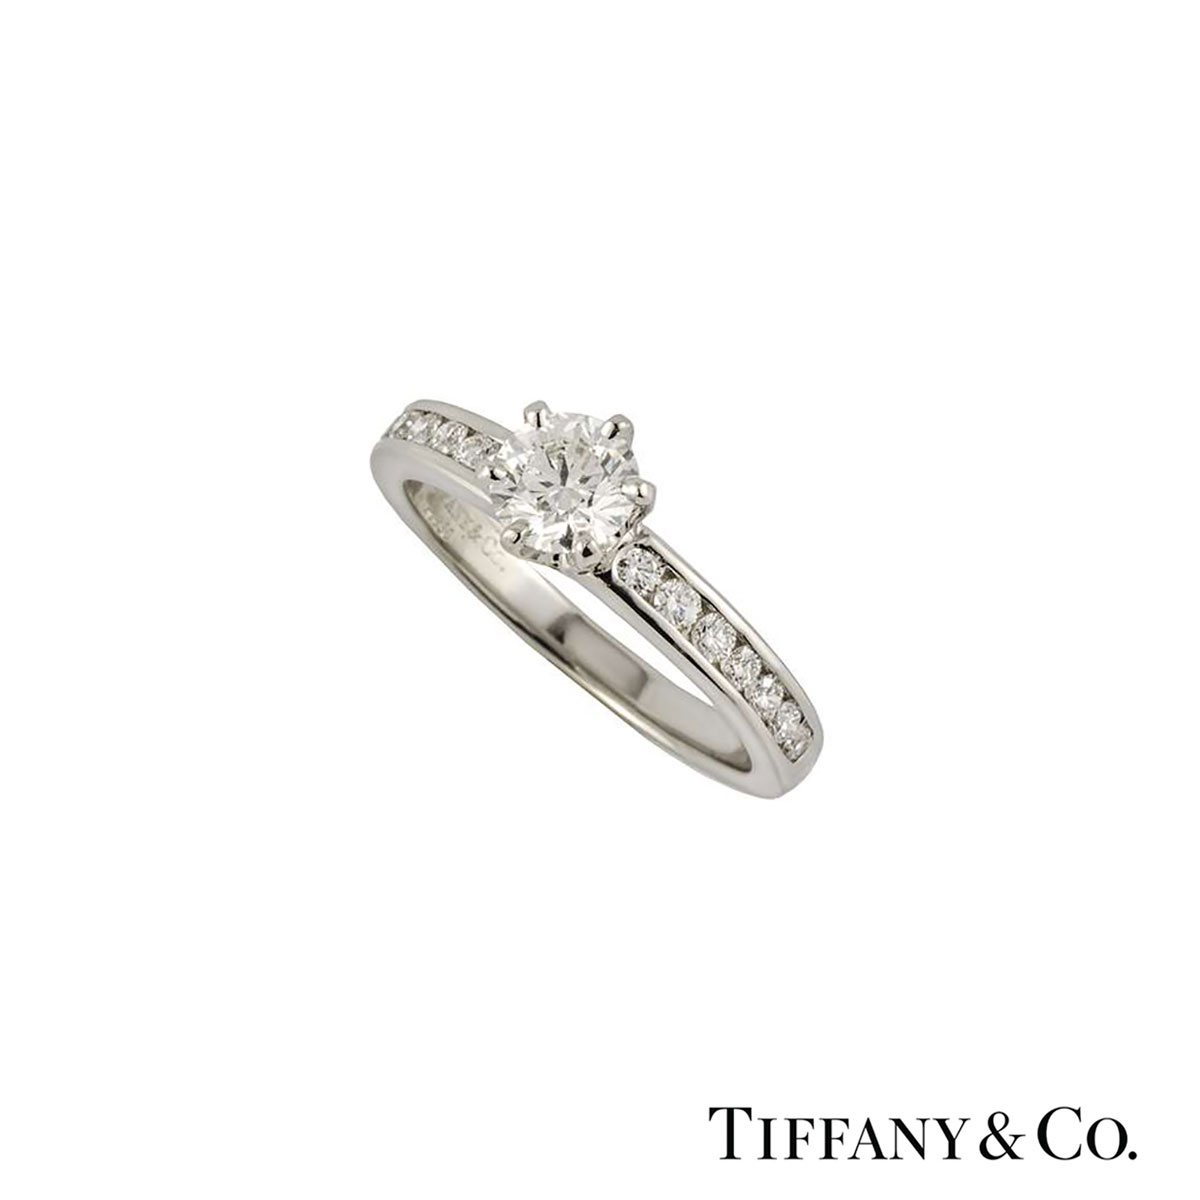 Tiffany & Co. The Tiffany Setting with Diamond Band Ring 0.33ct G/VS1